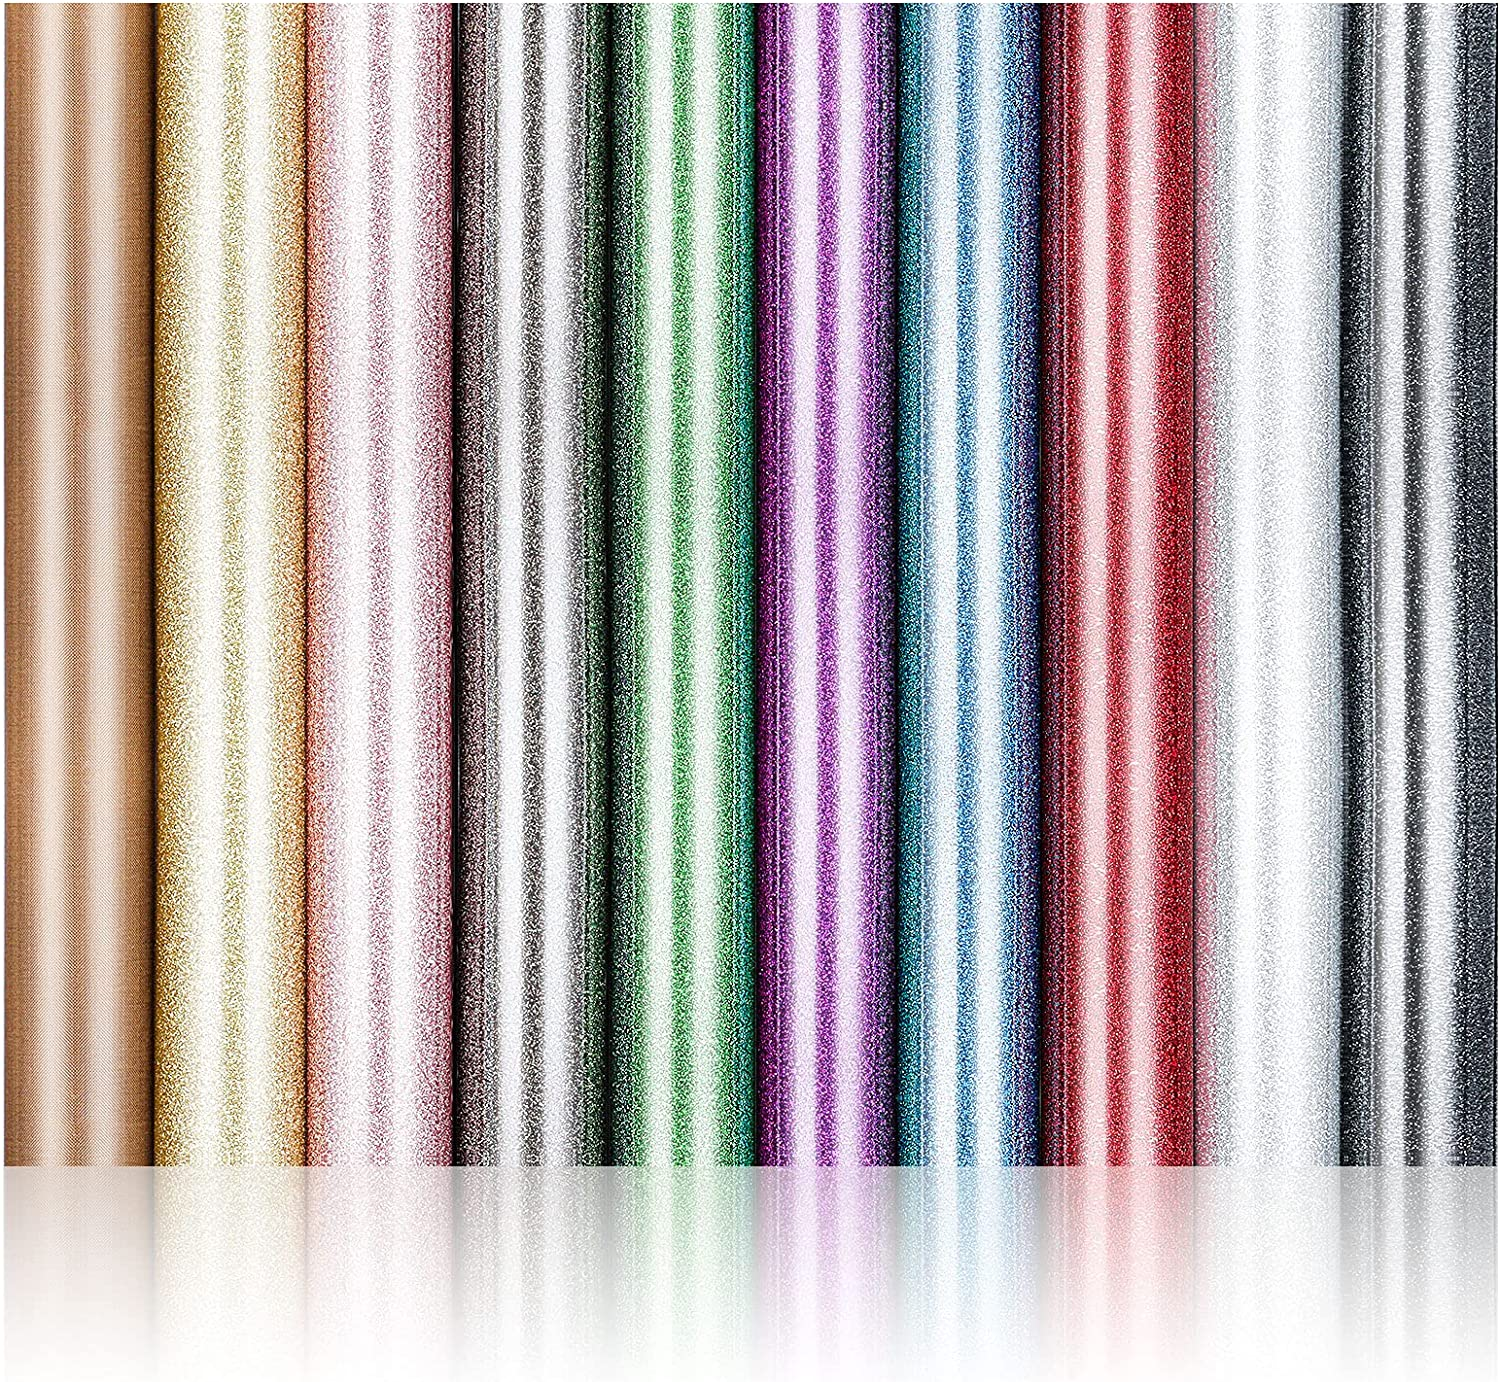 Glitter Heat Transfer Vinyl Sheets H 10 Colors Assorted Max 71% OFF 9 OFFer